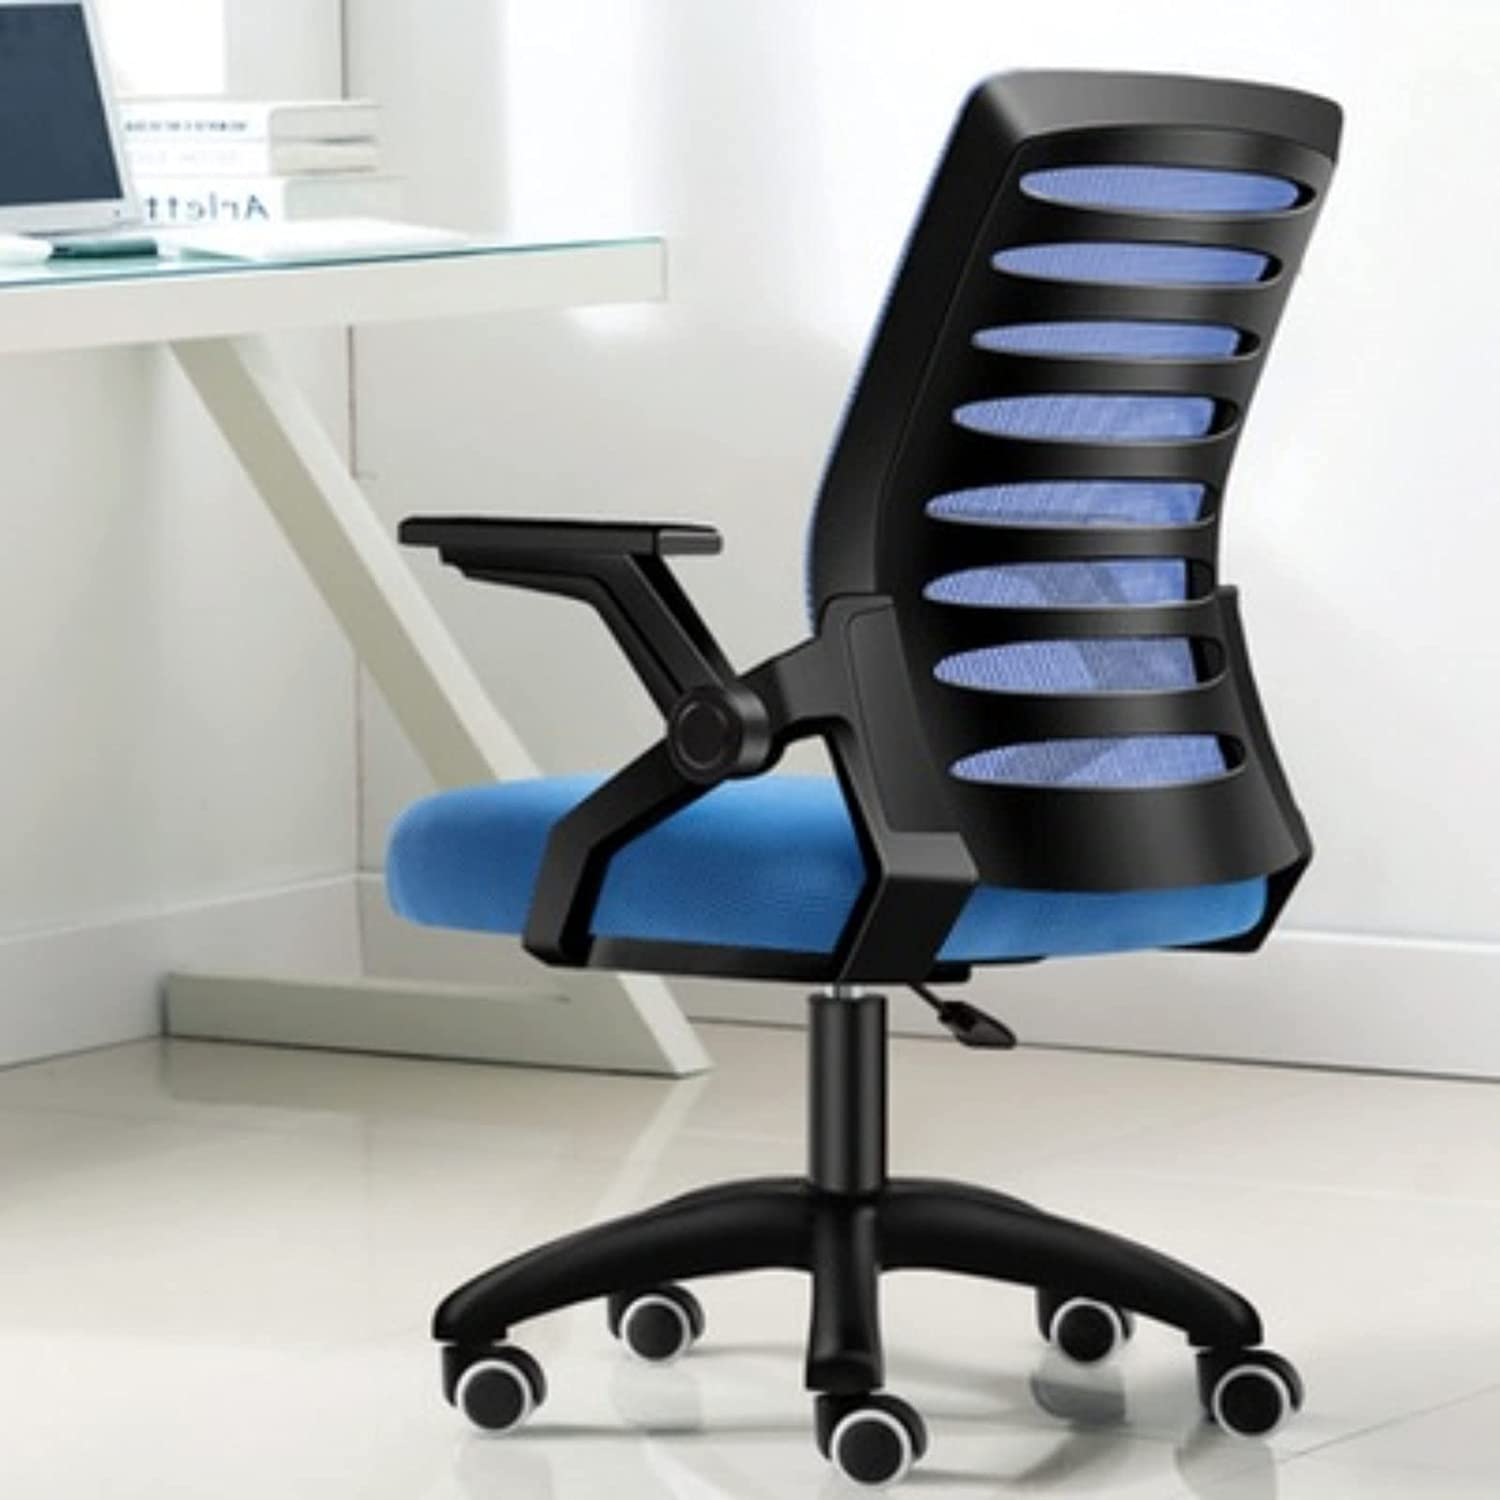 Computer Chair Home Office New life Lift B Employee Lazy seat Some reservation